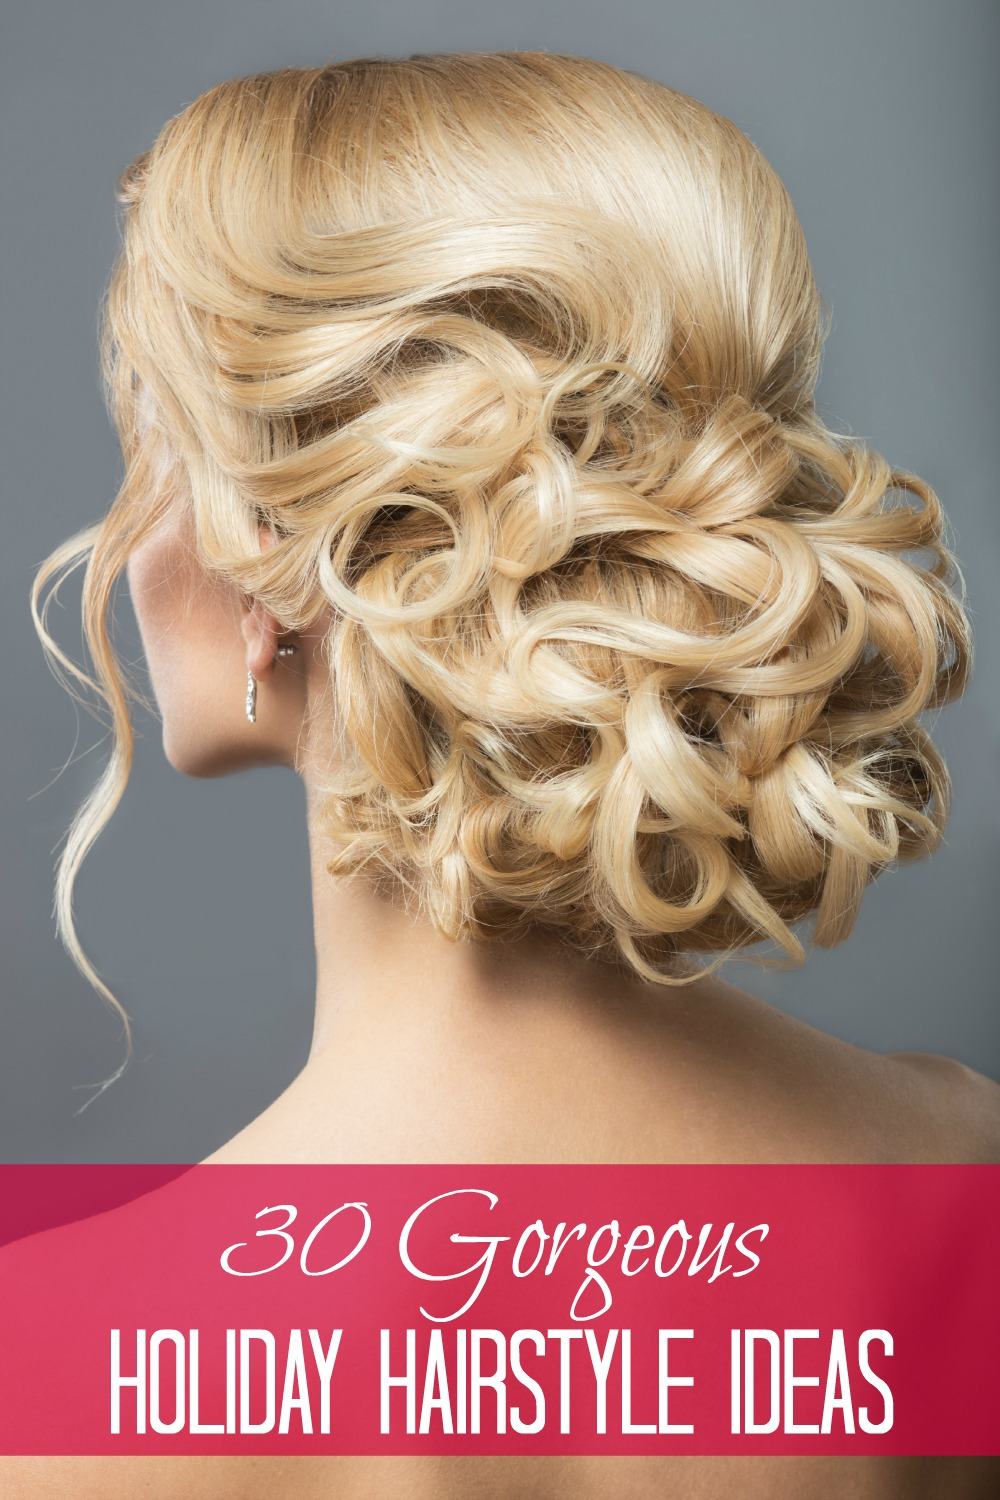 Xmas Hairstyles 2015 : Are you looking for Holiday hairstyles for that event youre attending ...